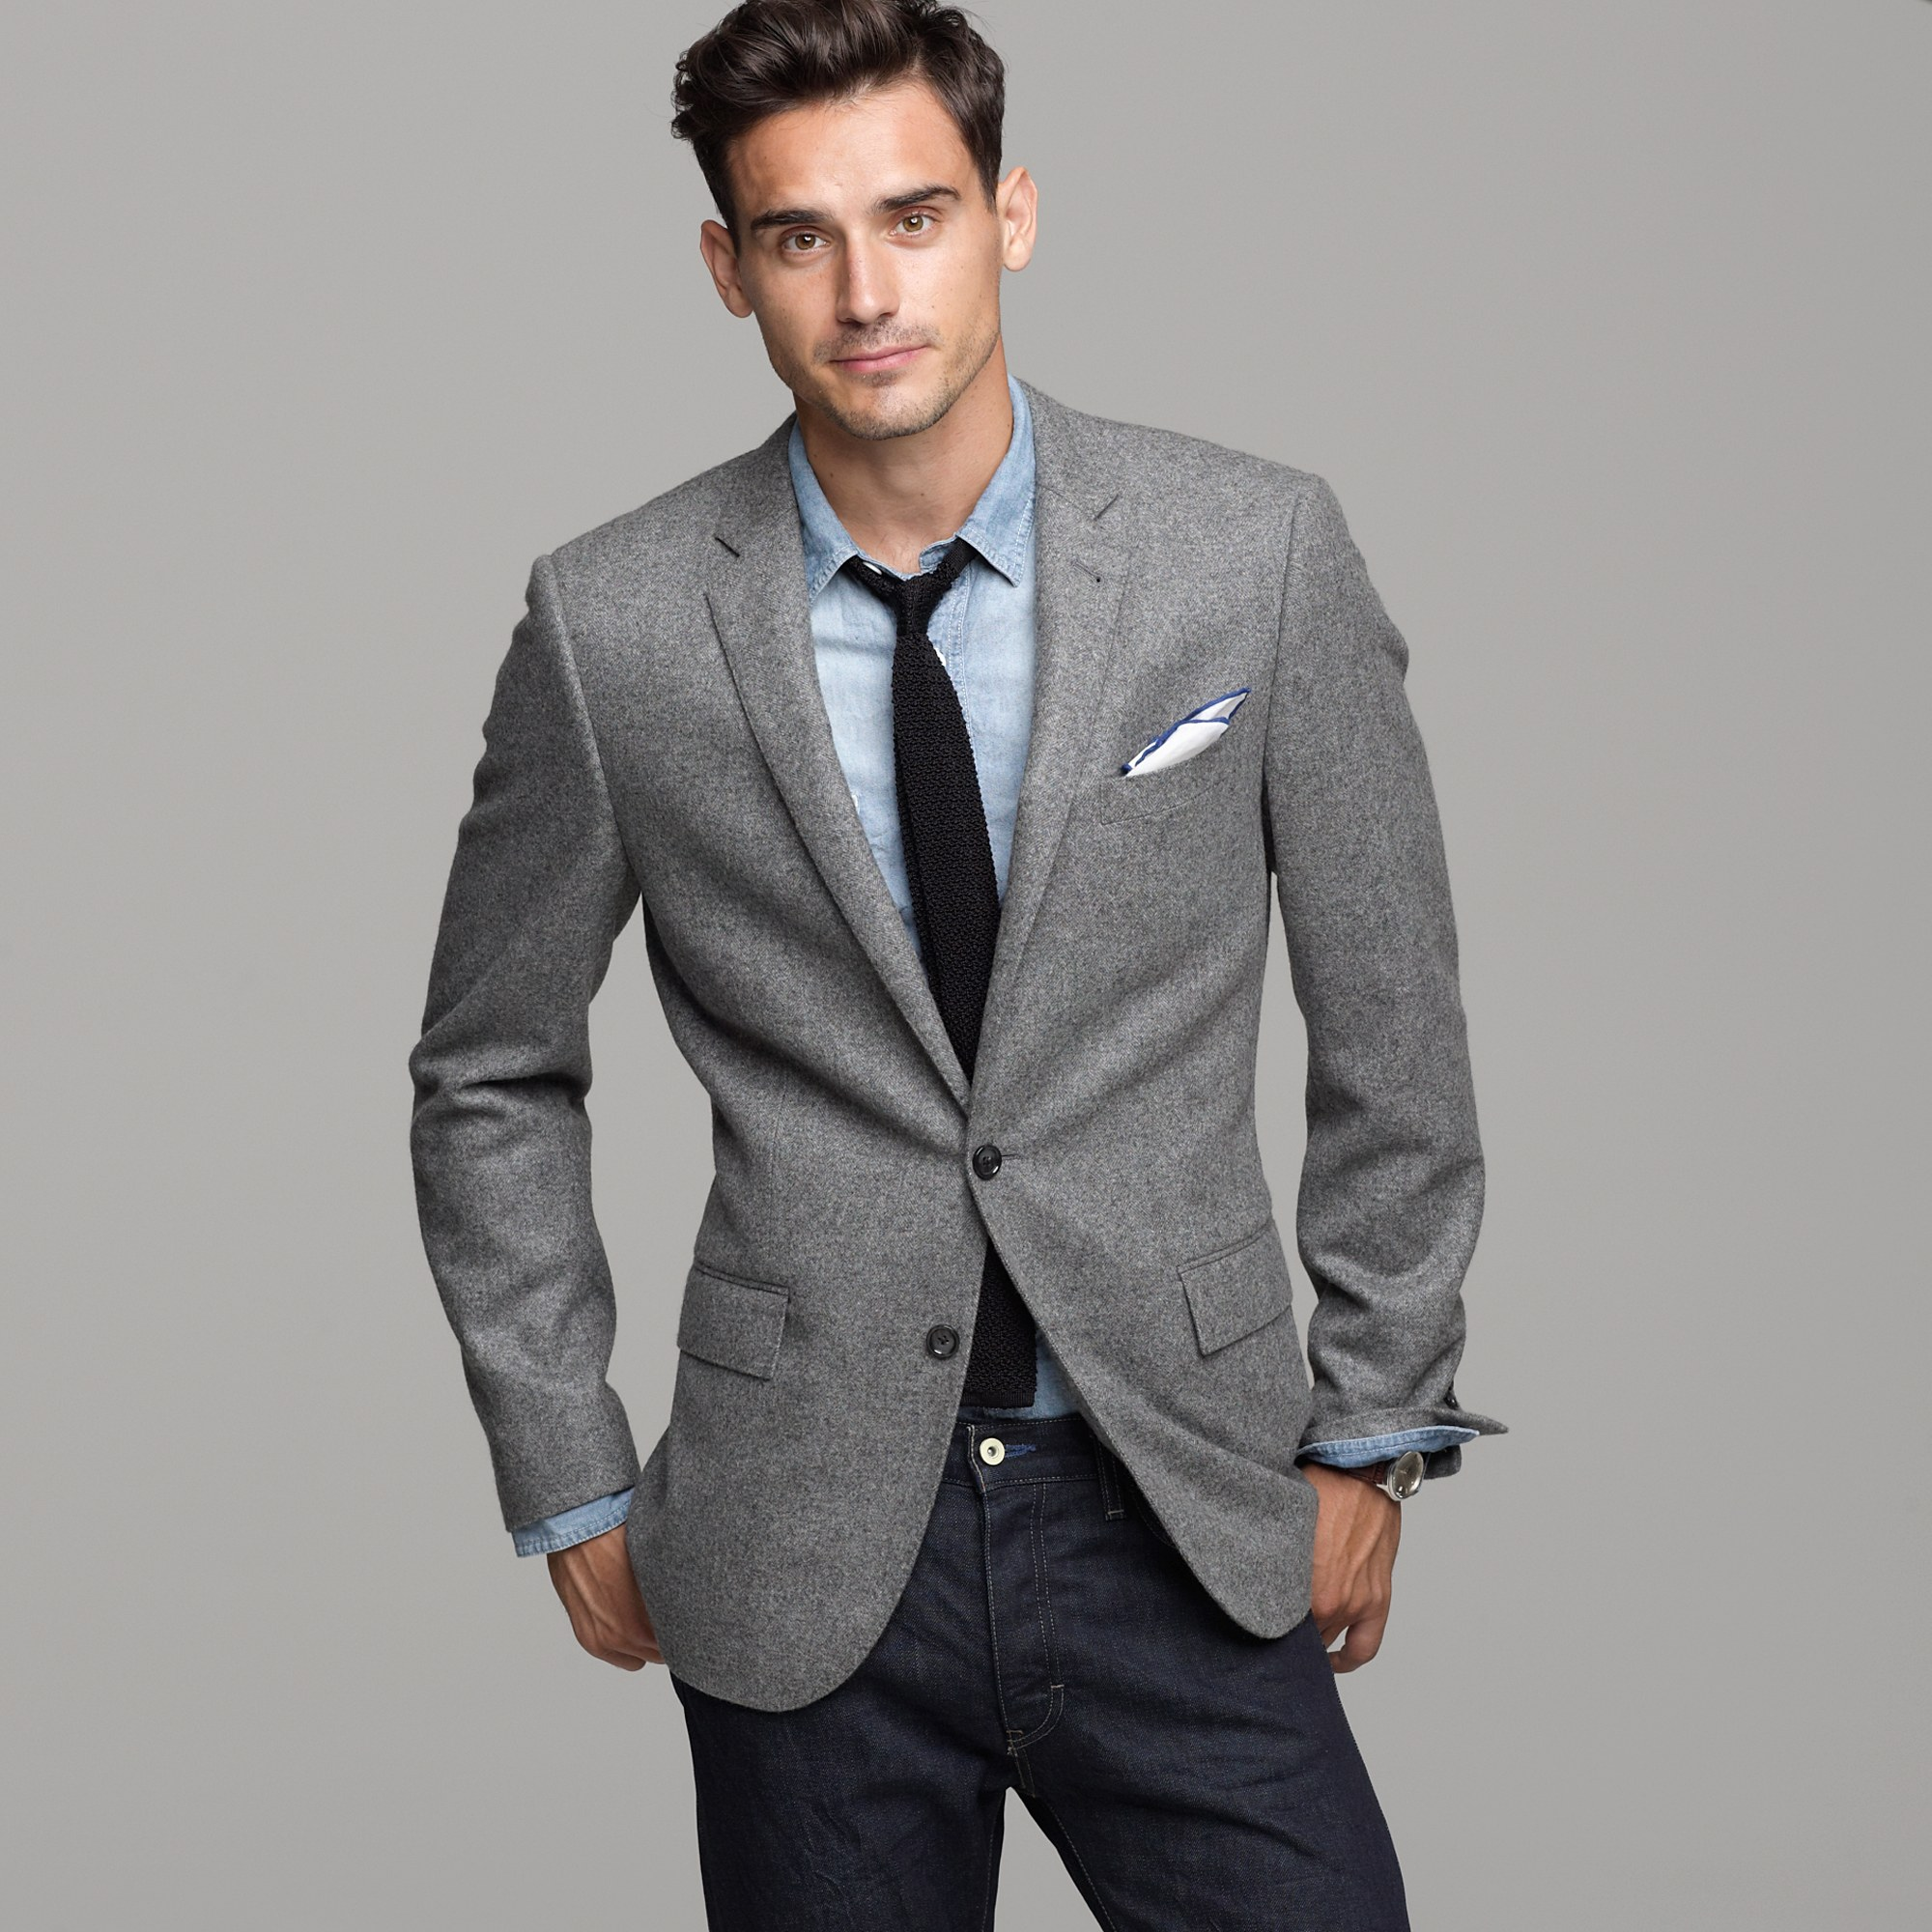 J Crew Cashmere Sportcoat In Ludlow Fit In Gray For Men Lyst